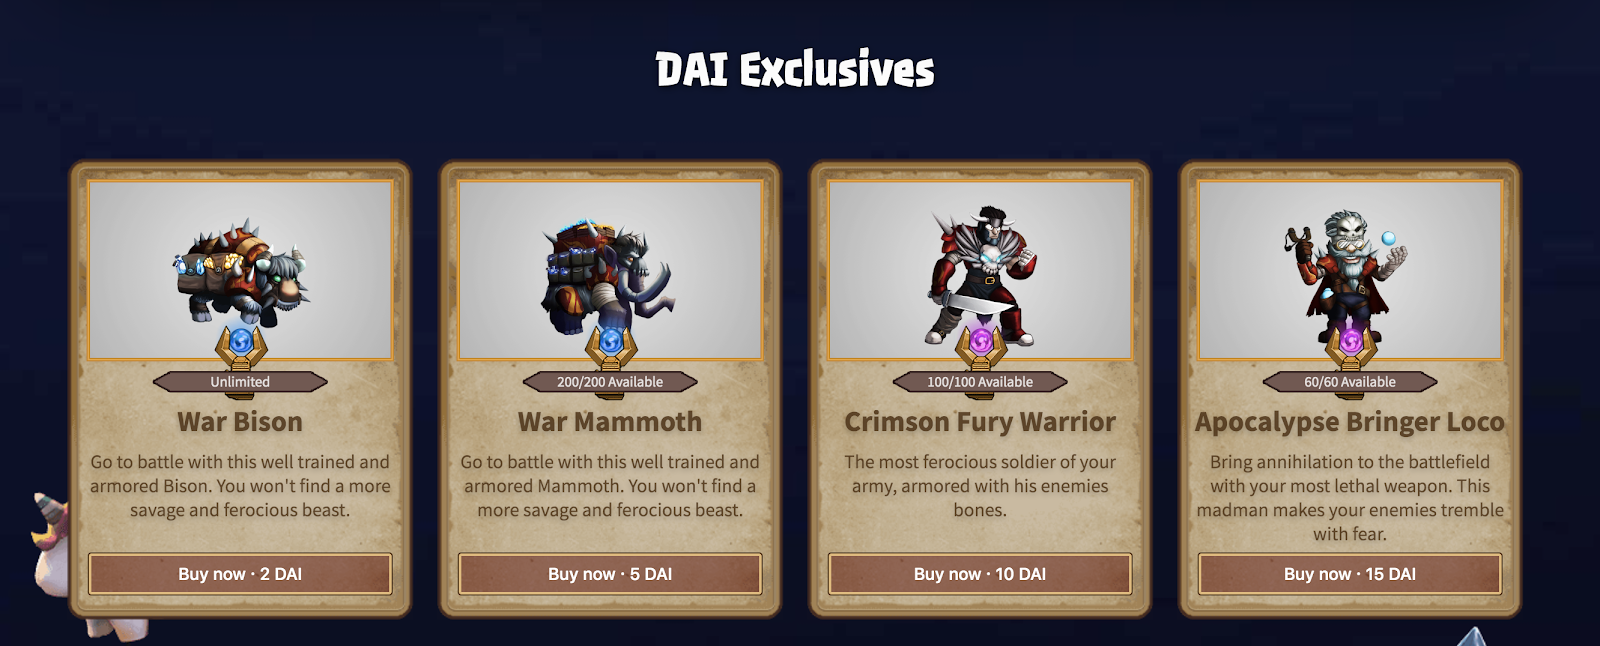 Highlights of the Dai Gaming Initiative include Dai-exclusive NFTs offered in the Cryptowars marketplace.